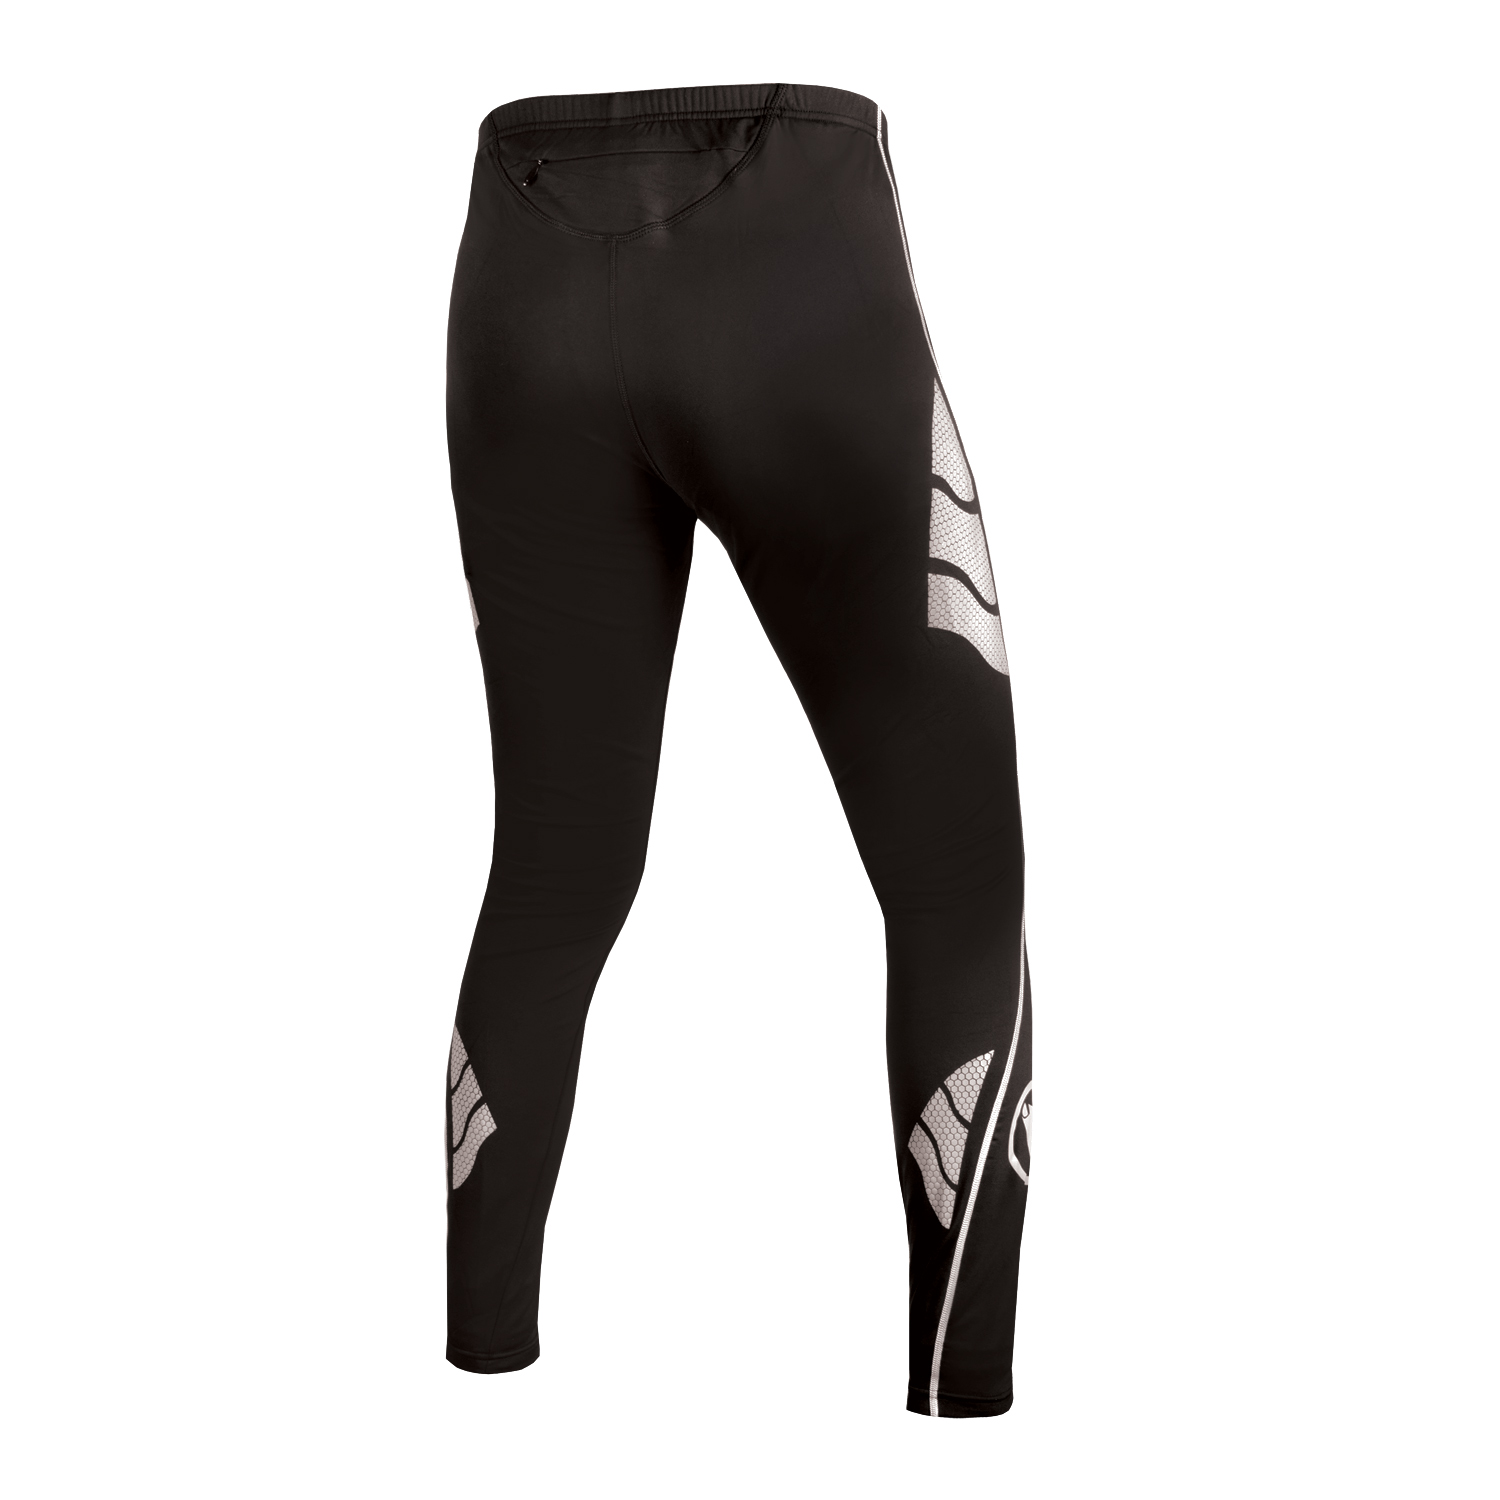 Luminite Tight Black